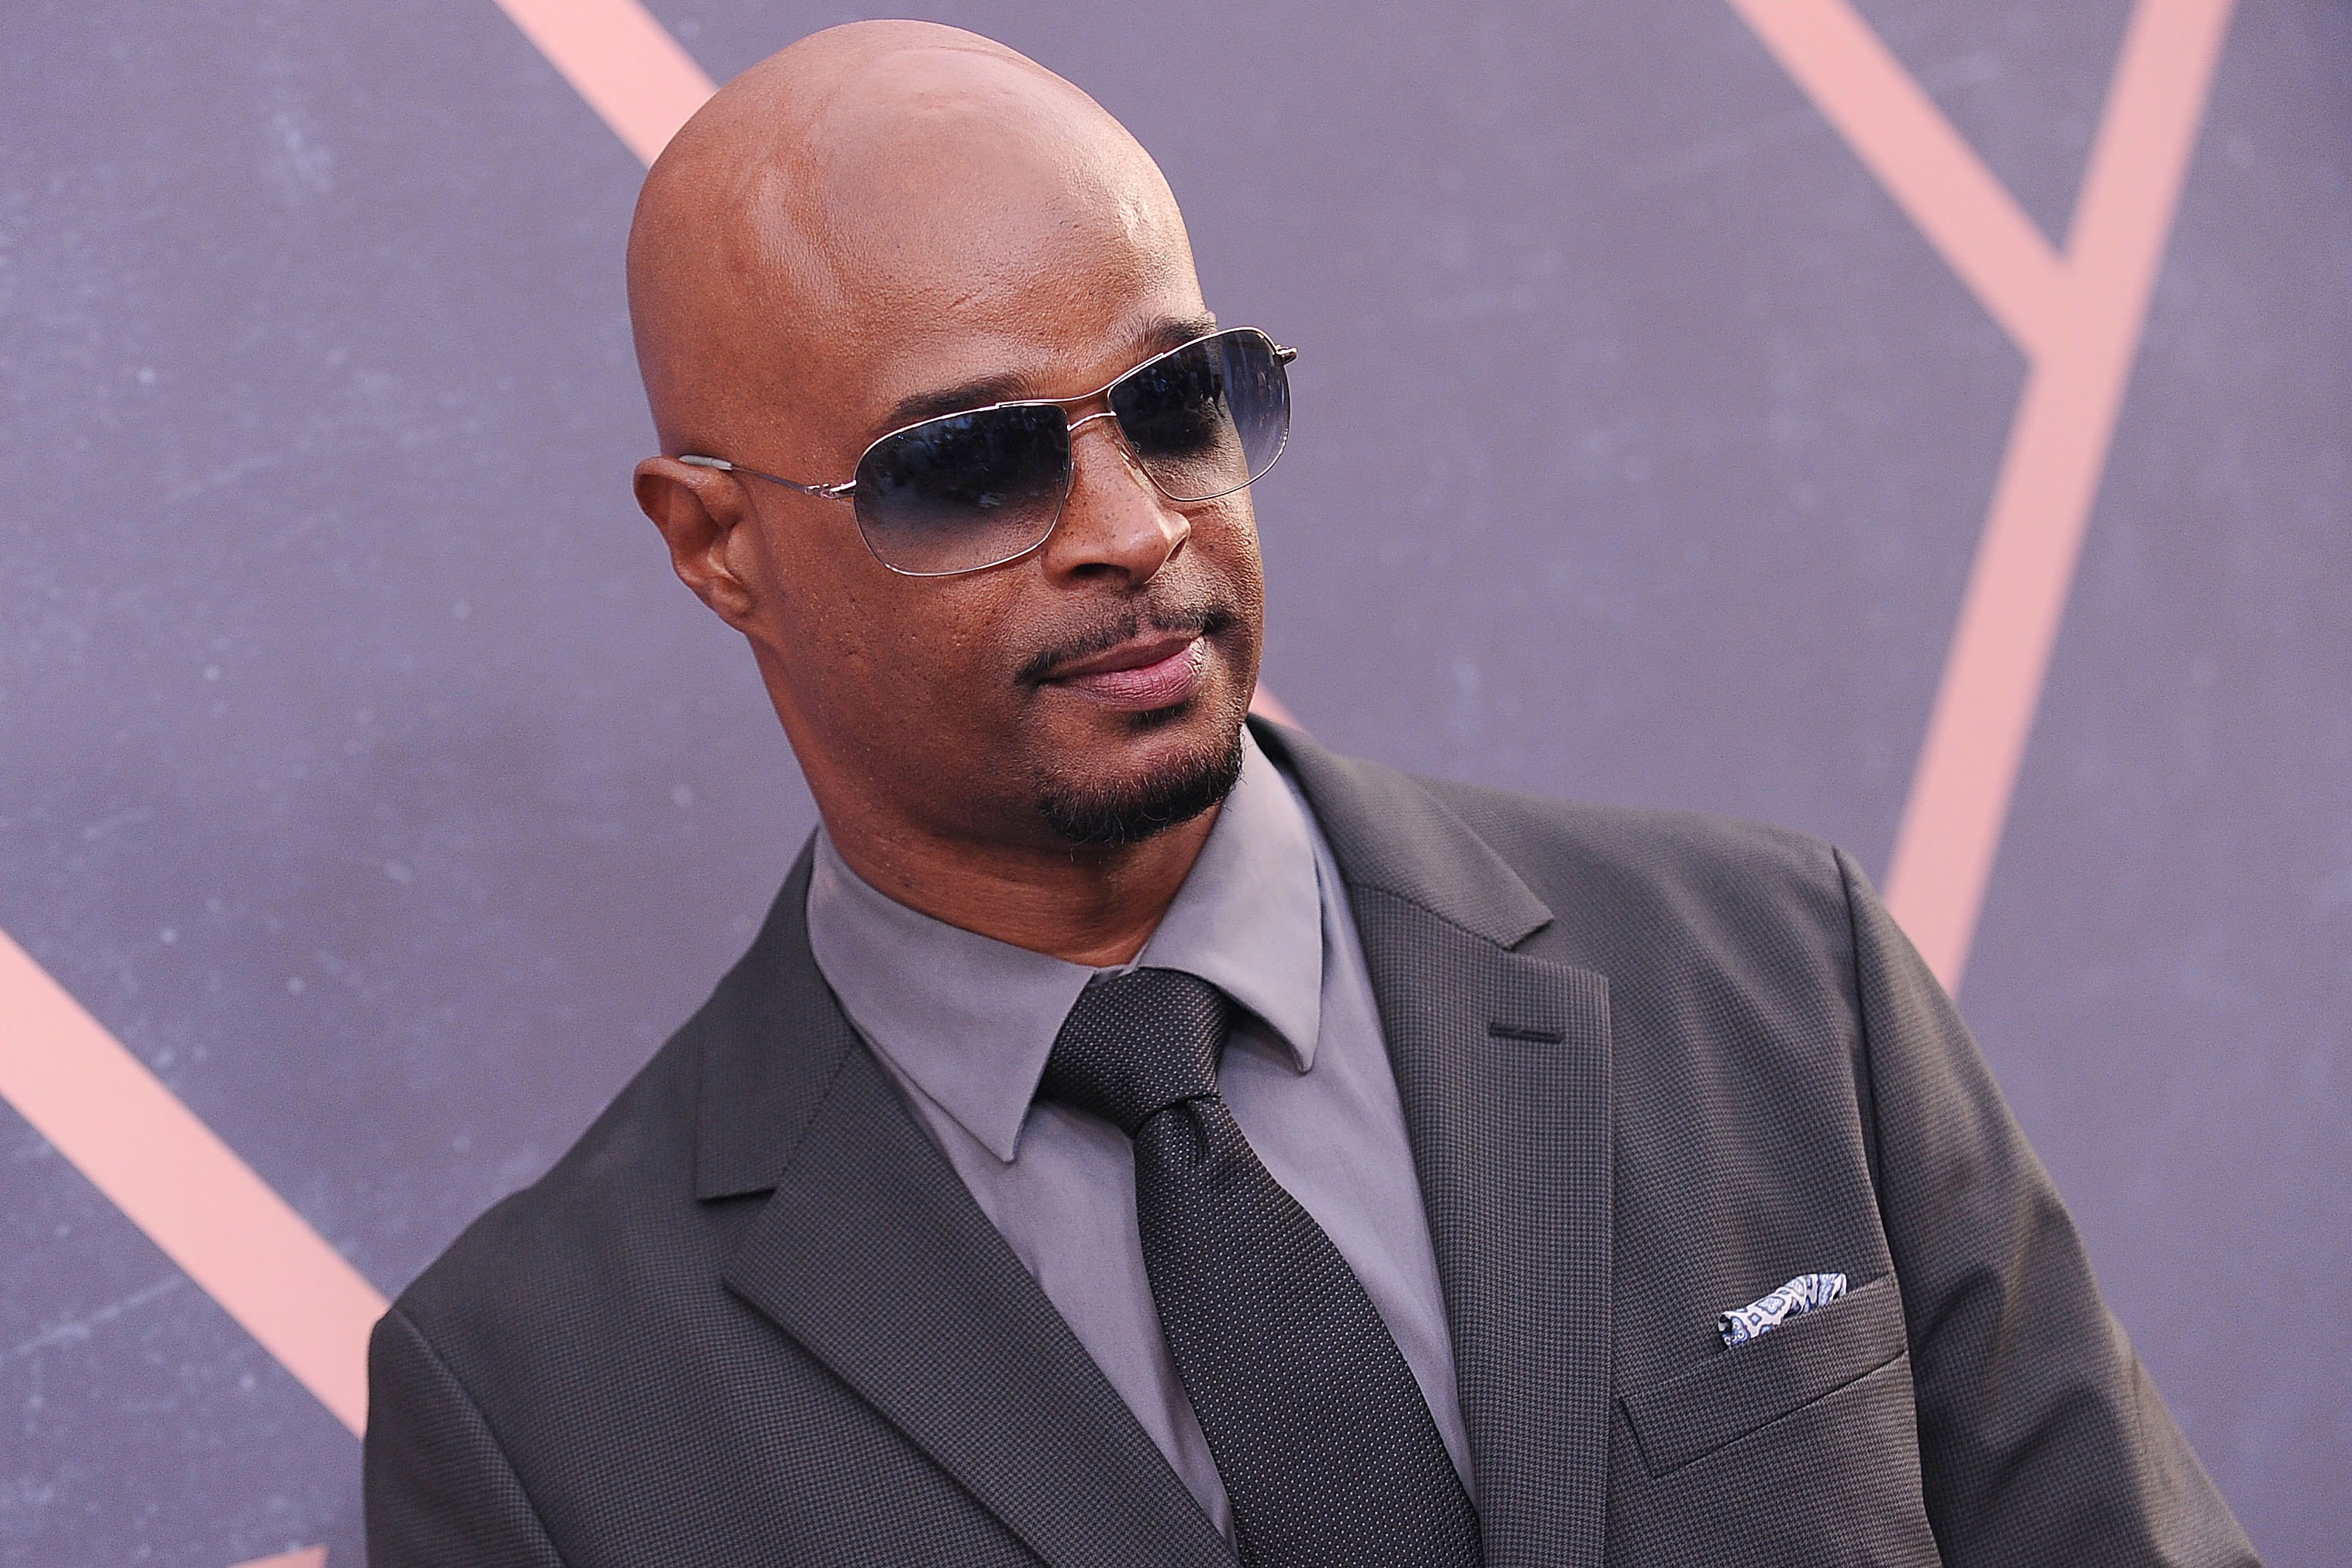 Damon Wayans posing for a picture wearing shades